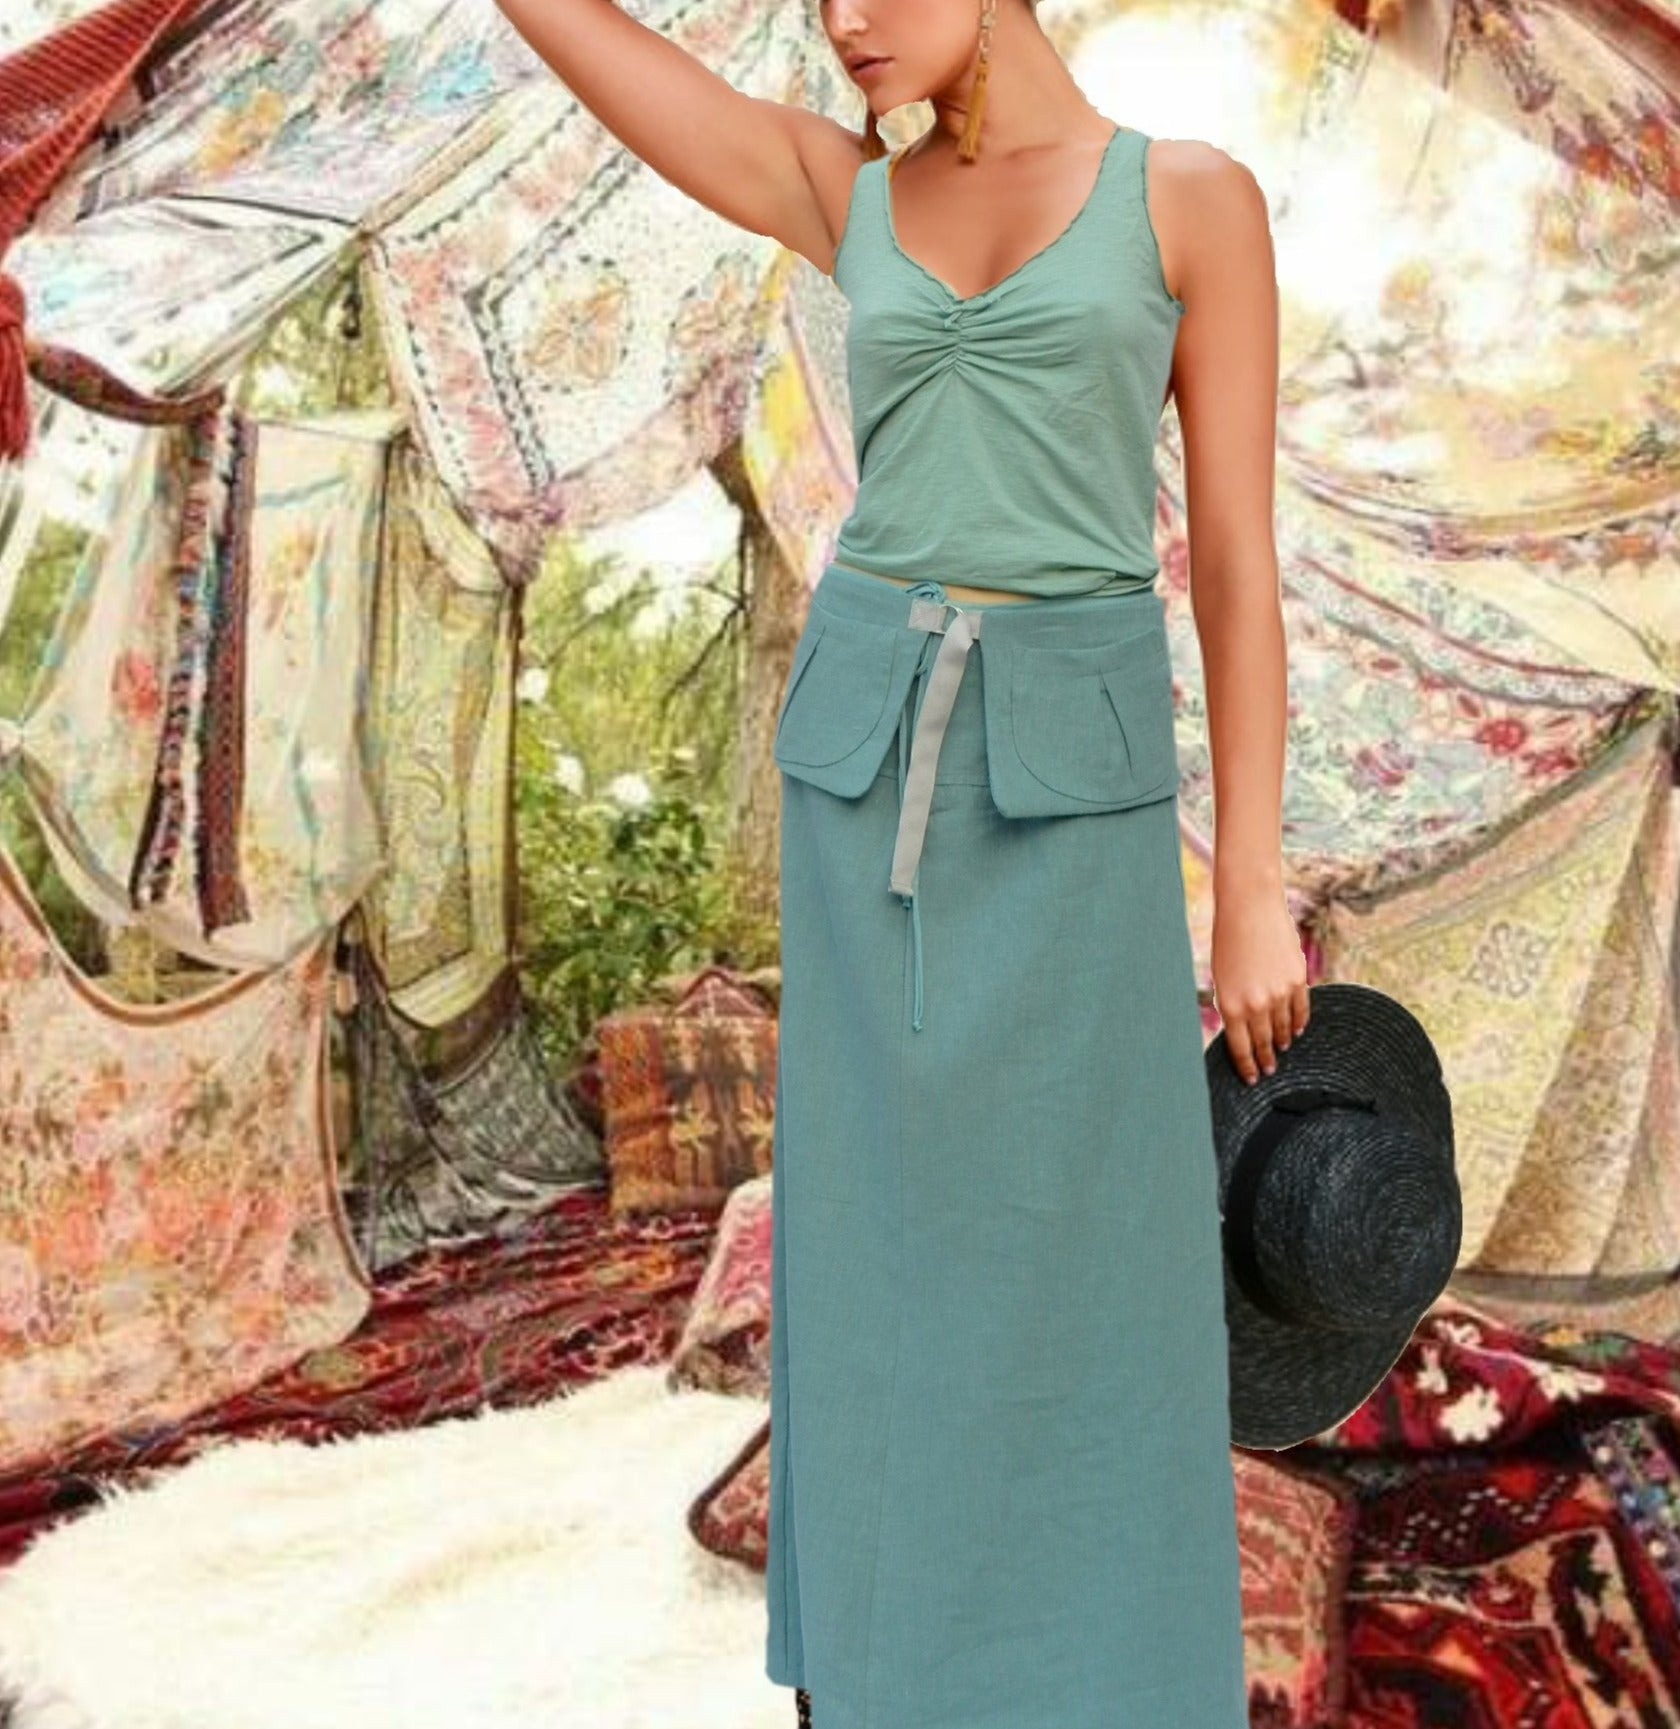 maxi rok van gewassen linnen met losse heupriem,  maxi skirt made of washed linen with separate belt